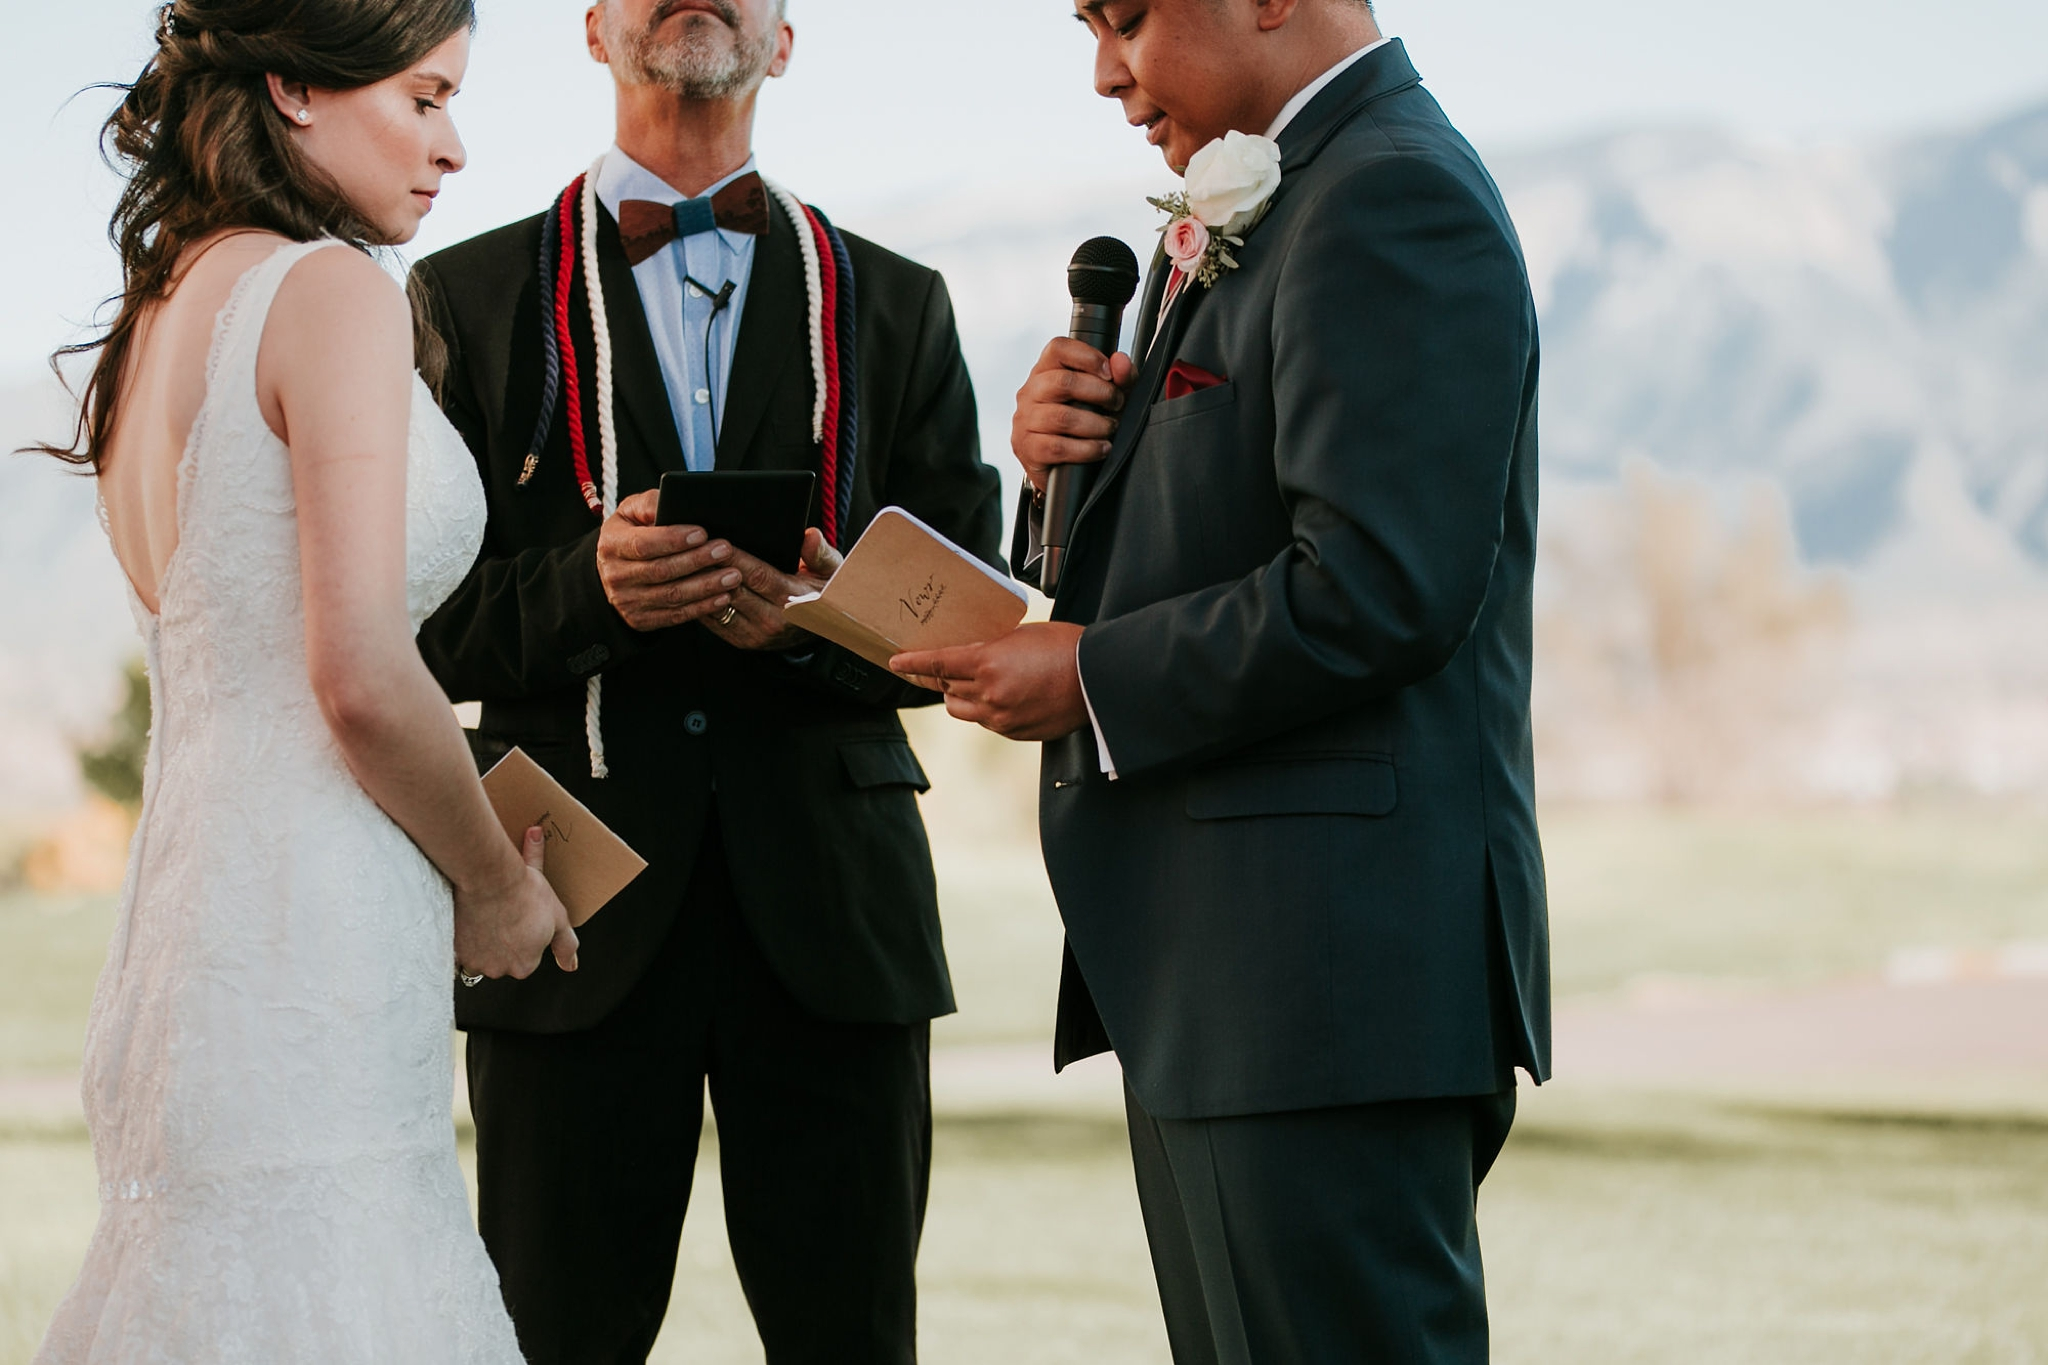 Alicia+lucia+photography+-+albuquerque+wedding+photographer+-+santa+fe+wedding+photography+-+new+mexico+wedding+photographer+-+new+mexico+wedding+-+wedding+vows+-+writing+your+own+vows+-+wedding+inspo_0002.jpg